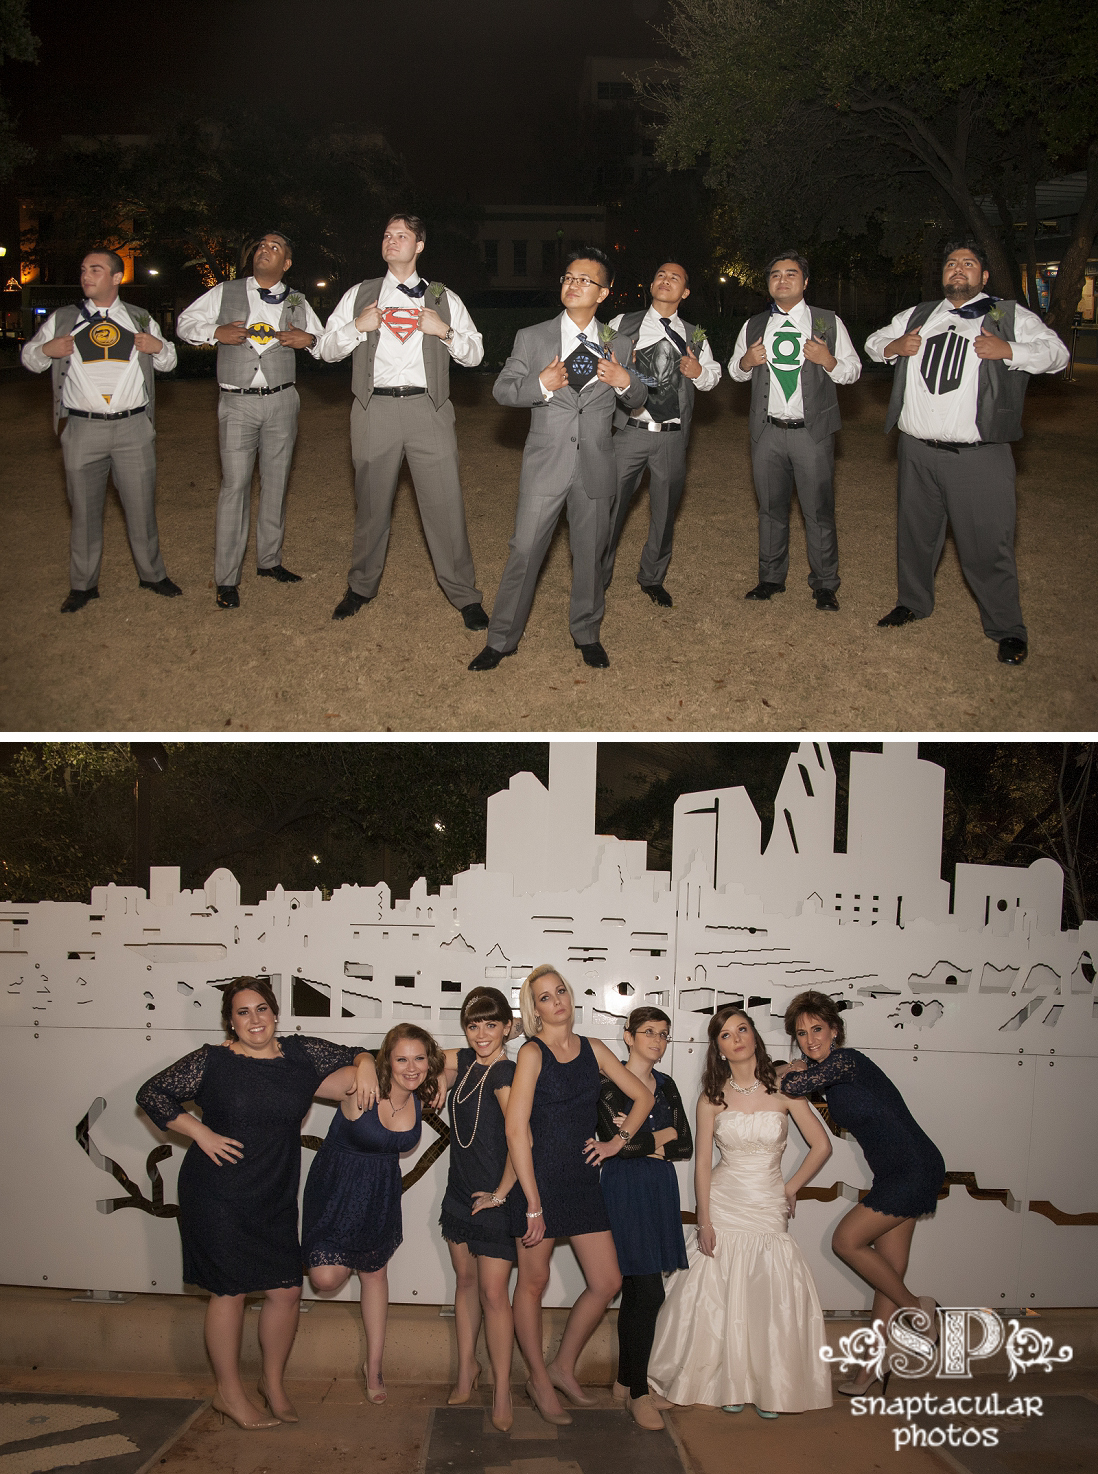 superhero tshirt groomsmen photo, bridesmaids movie photo, christi and glen's wedding at prince of peace catholic community houston, prince of peace catholic community houston wedding photos, houston wedding photographer, downtown wedding photographer houston